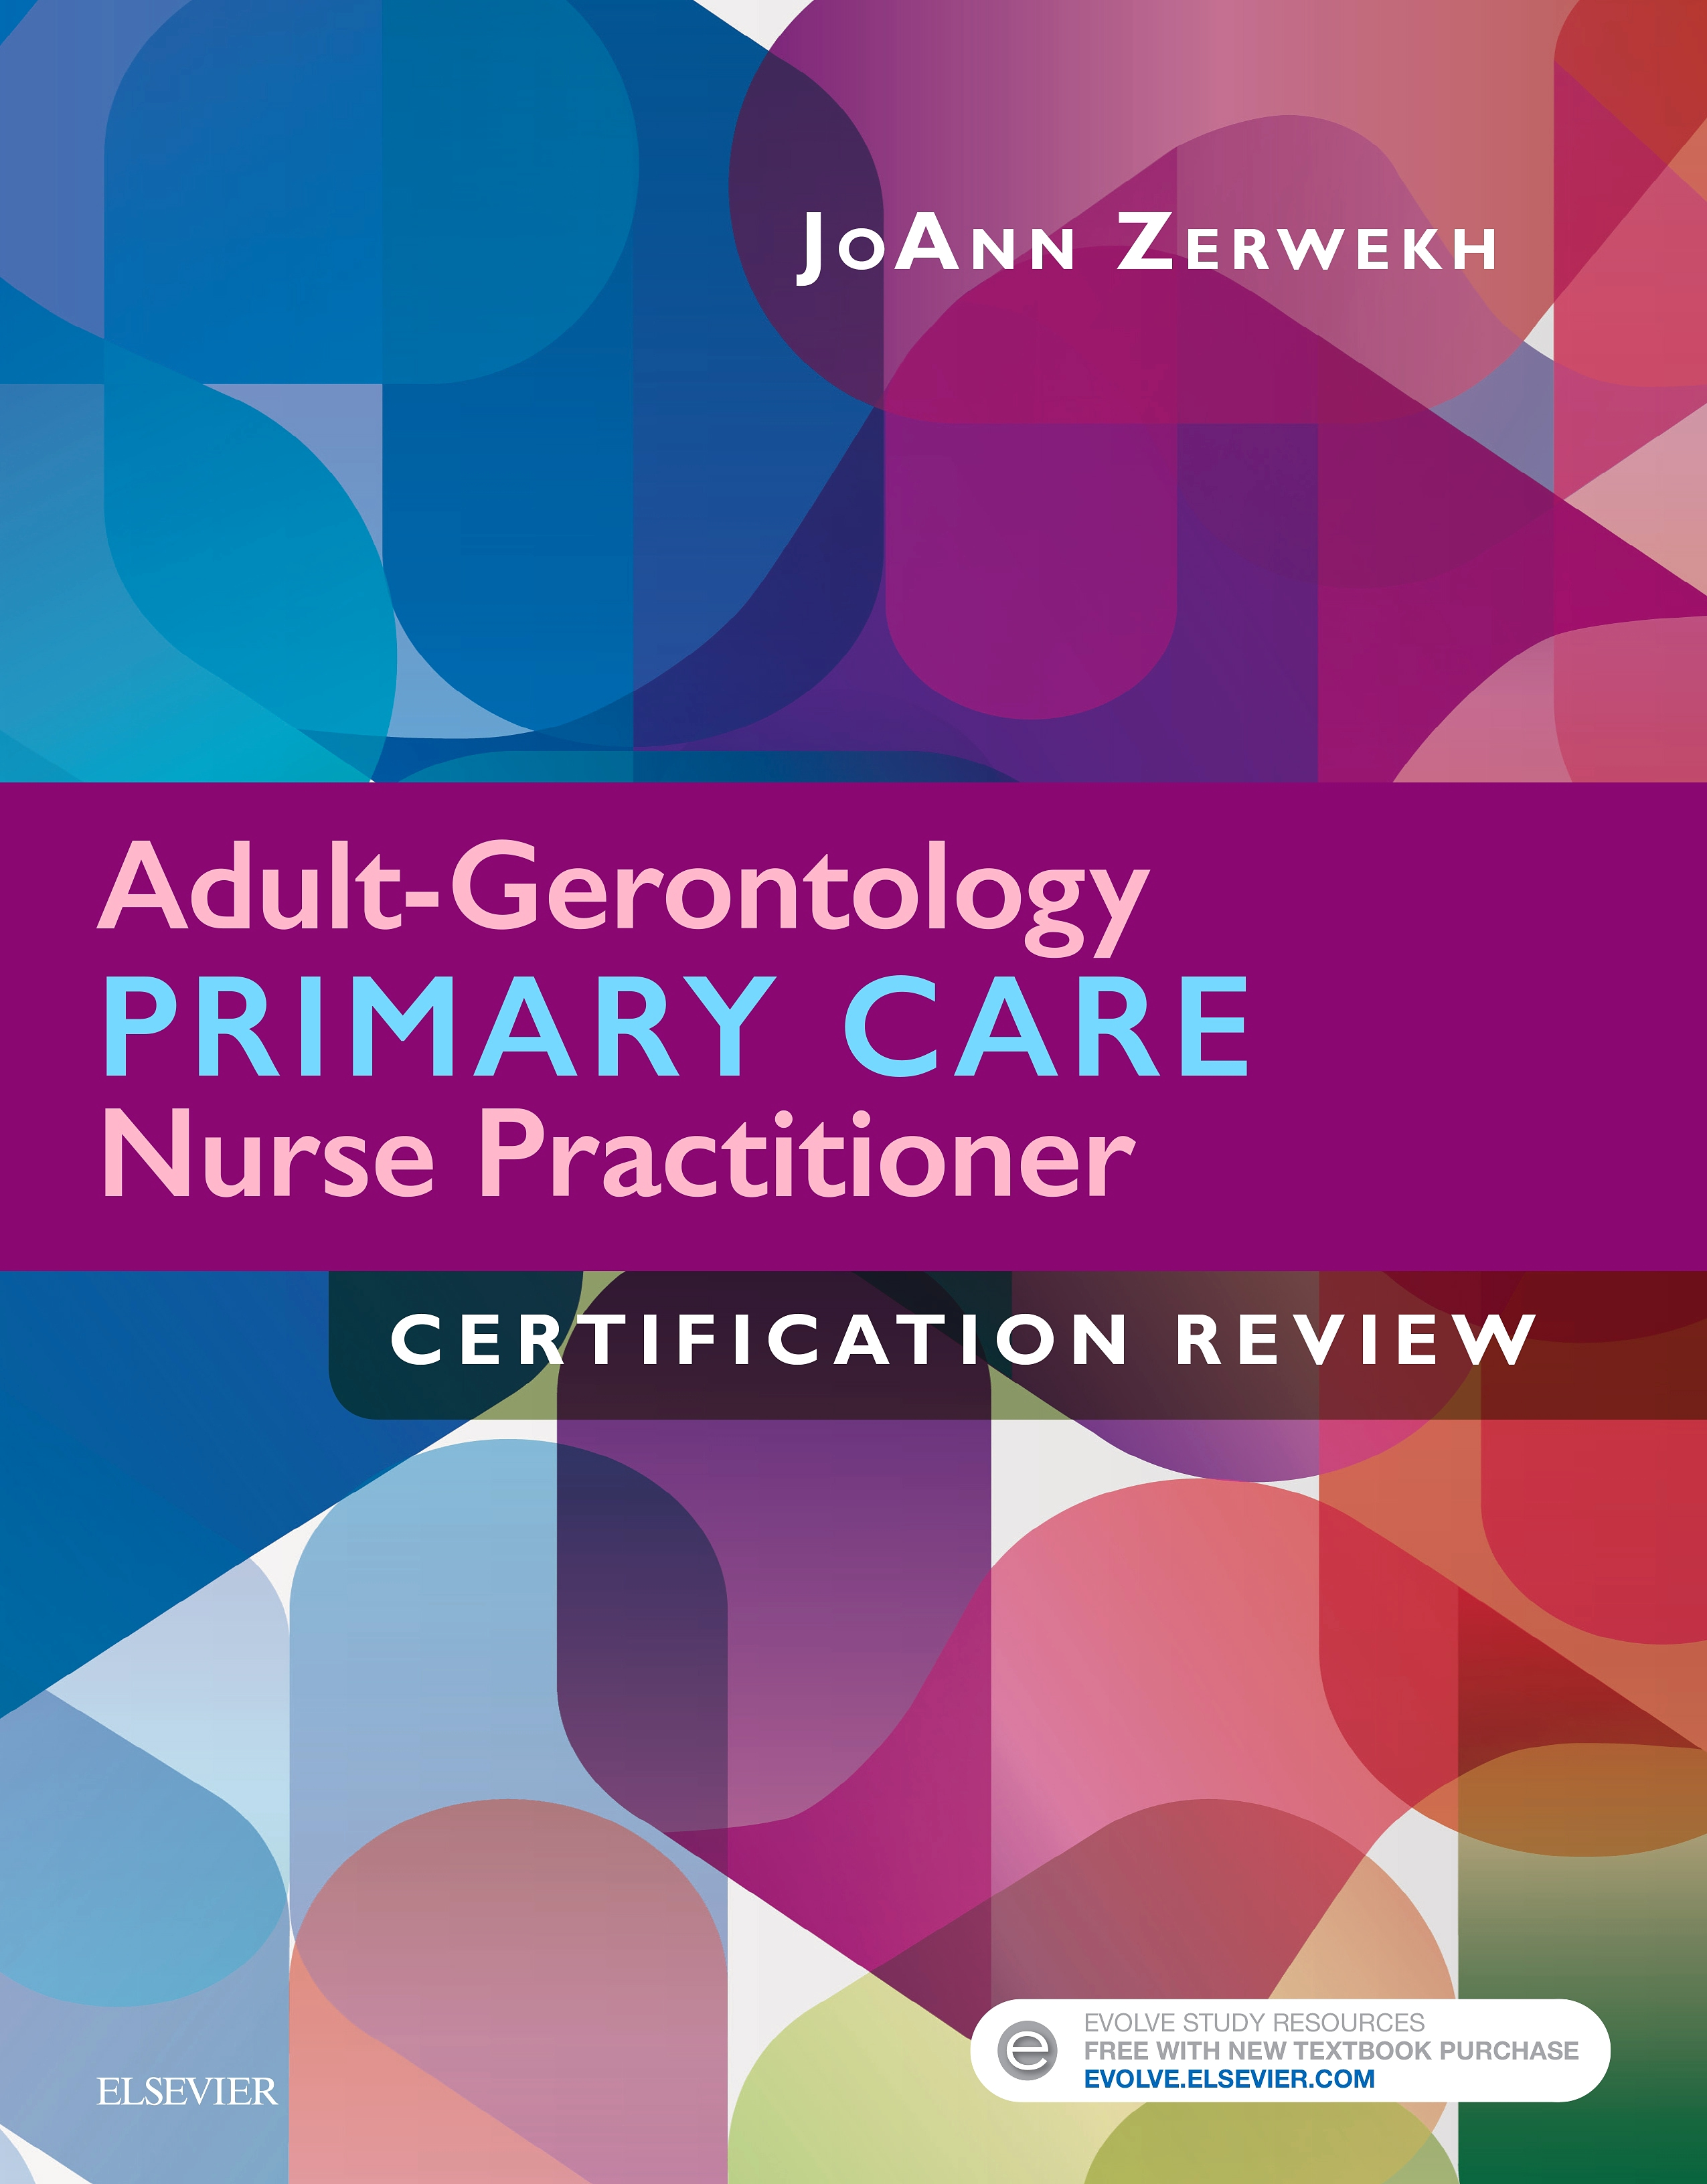 Evolve Resources for Adult-Gerontology Primary Care Nurse Practitioner Certification Review